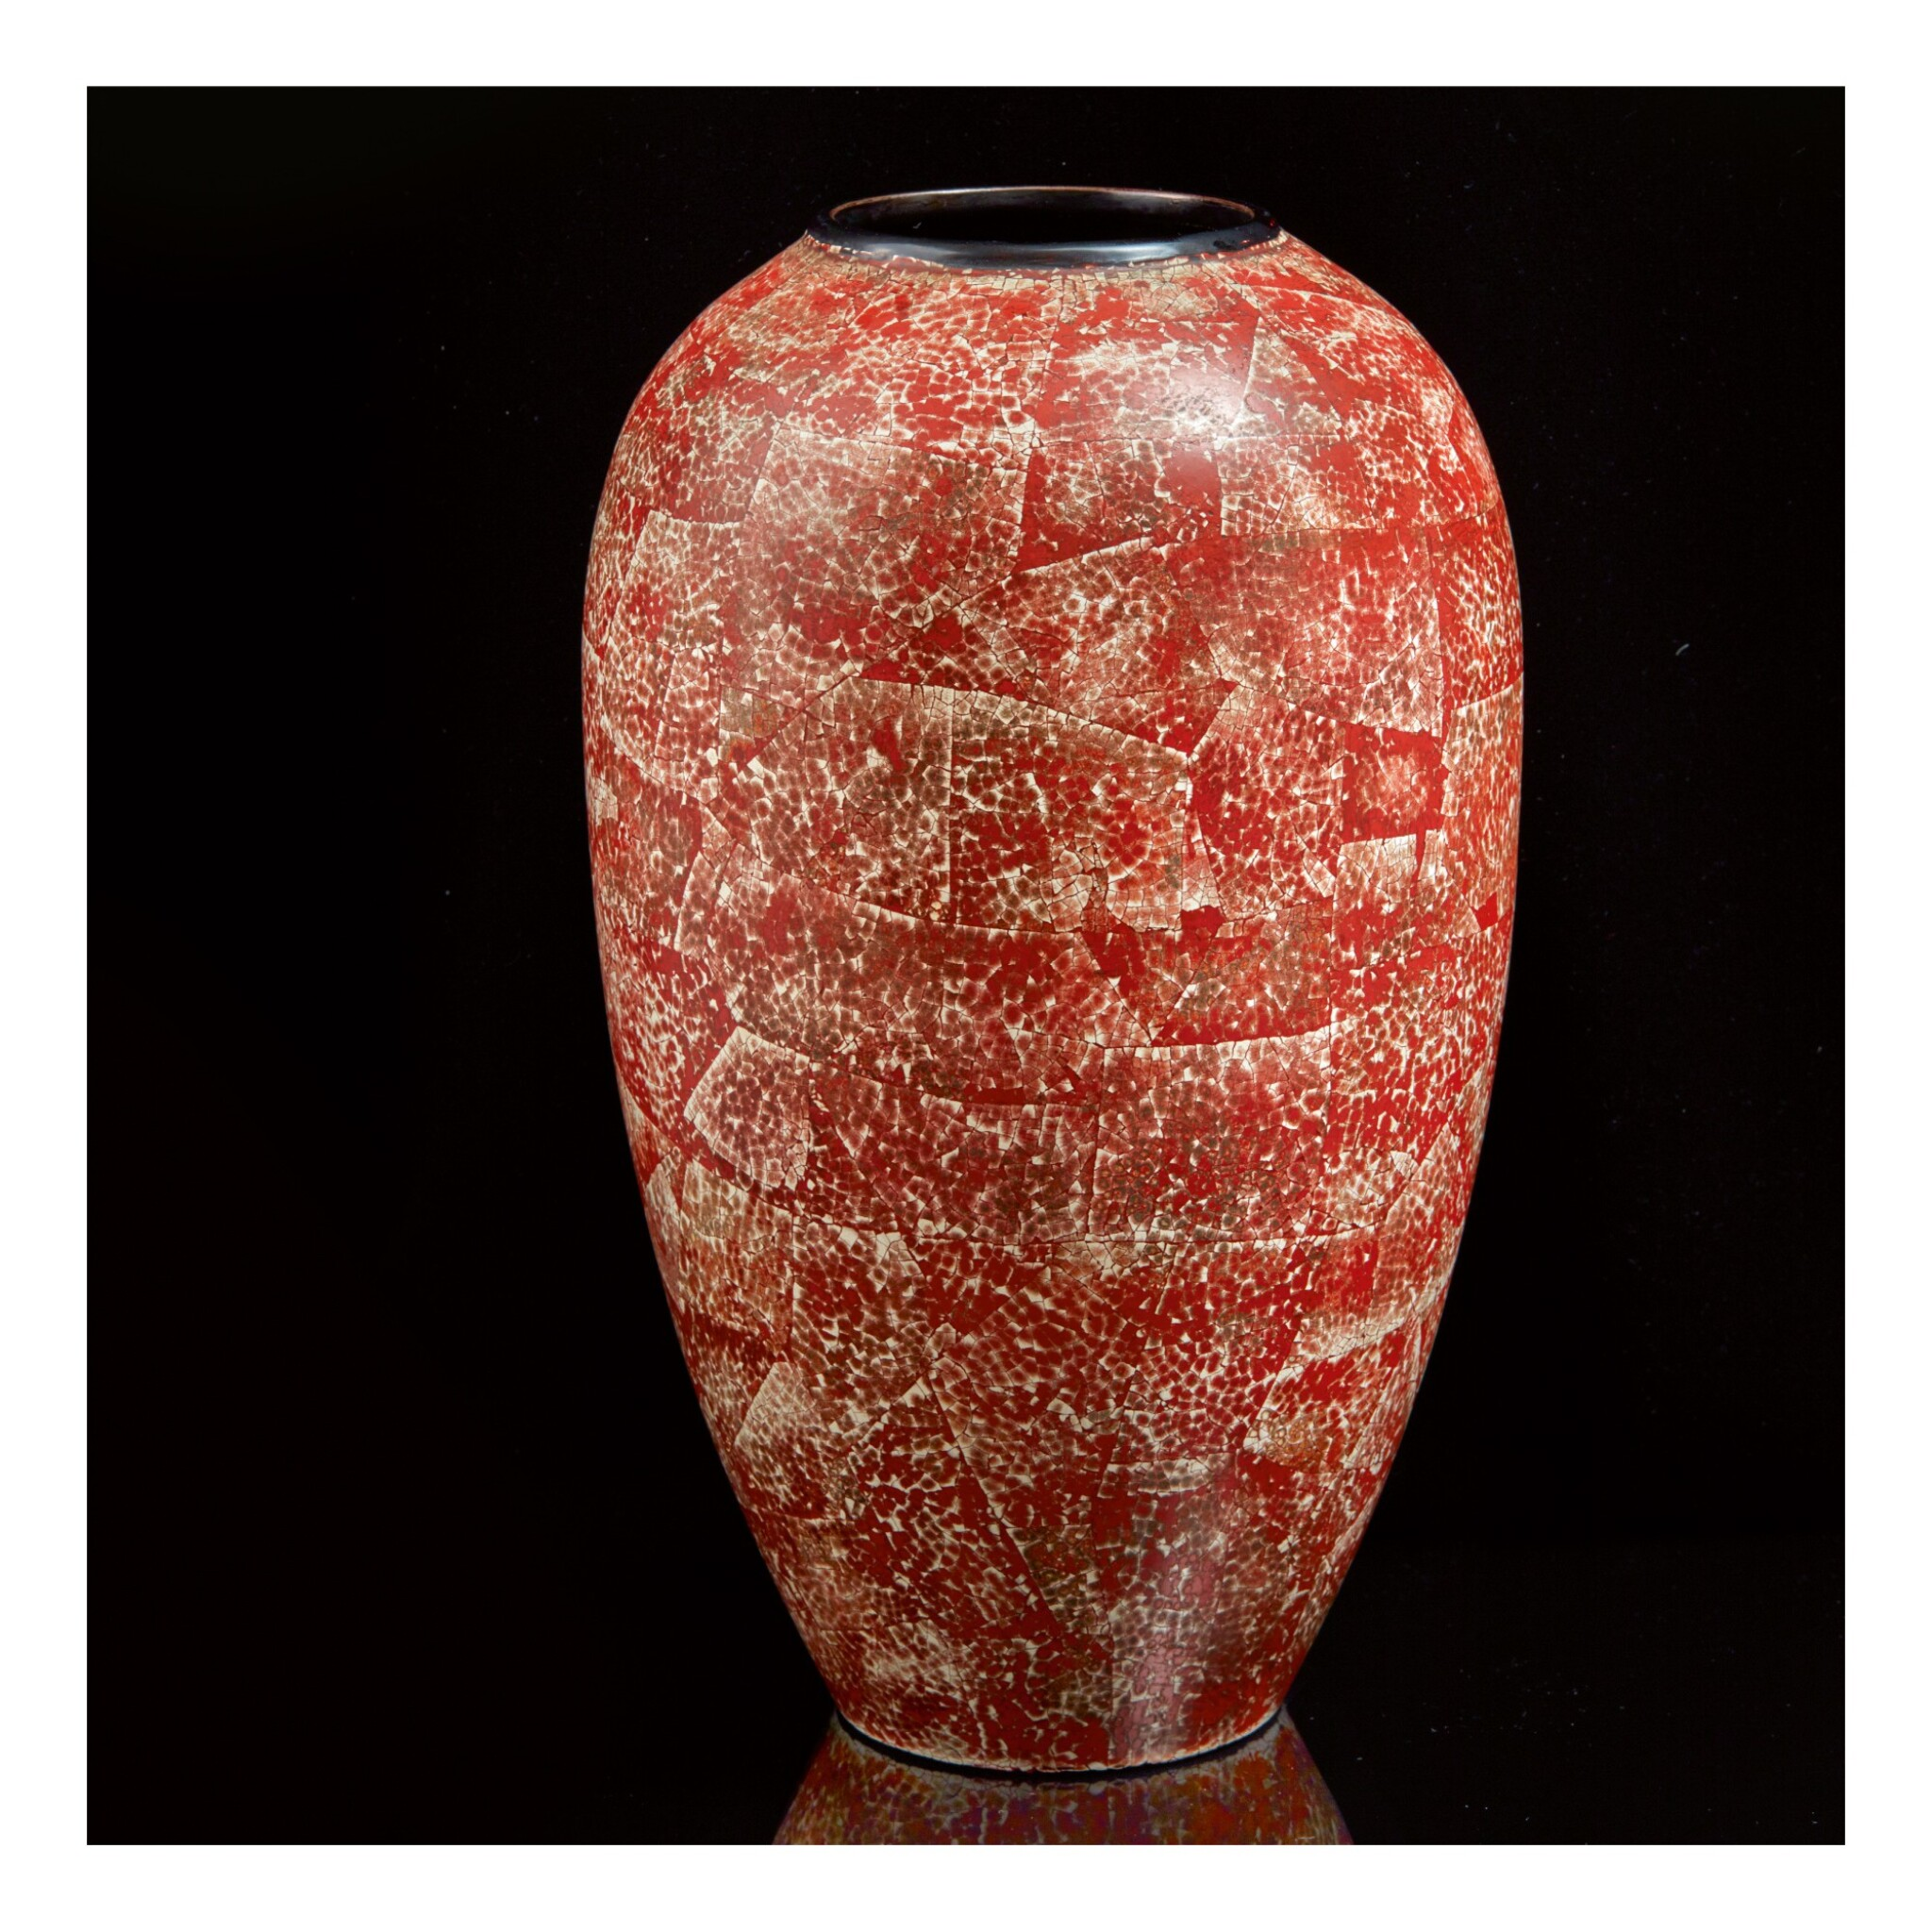 View 1 of Lot 39. Vase.